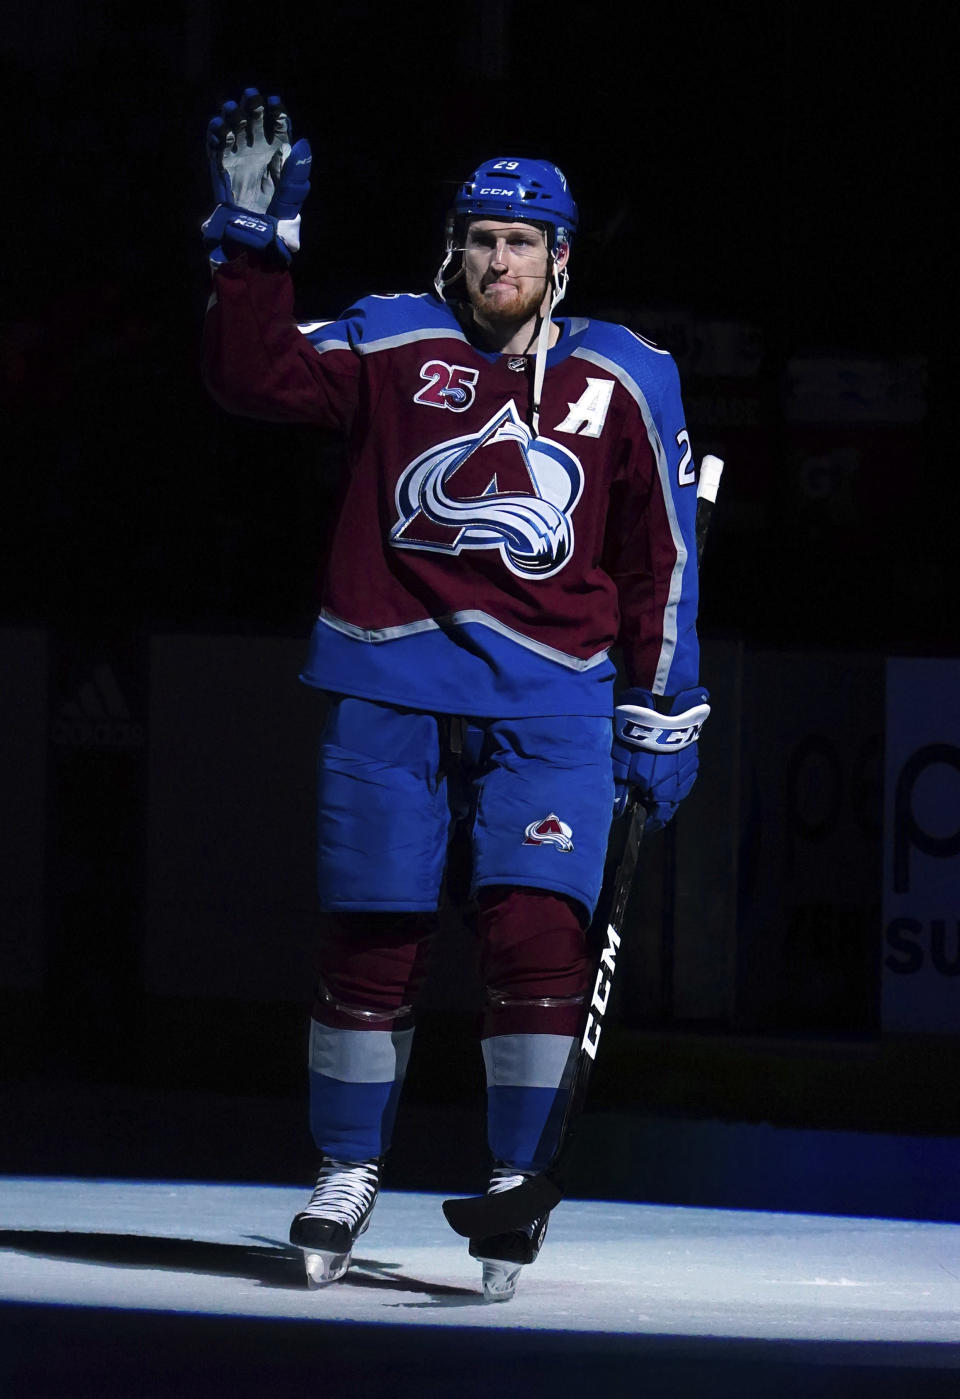 Colorado Avalanche center Nathan MacKinnon (29) waves to the crowd following a win against the Vegas Golden Knights in Game 1 of an NHL hockey Stanley Cup second-round playoff series Sunday, May 30, 2021, in Denver. (AP Photo/Jack Dempsey)